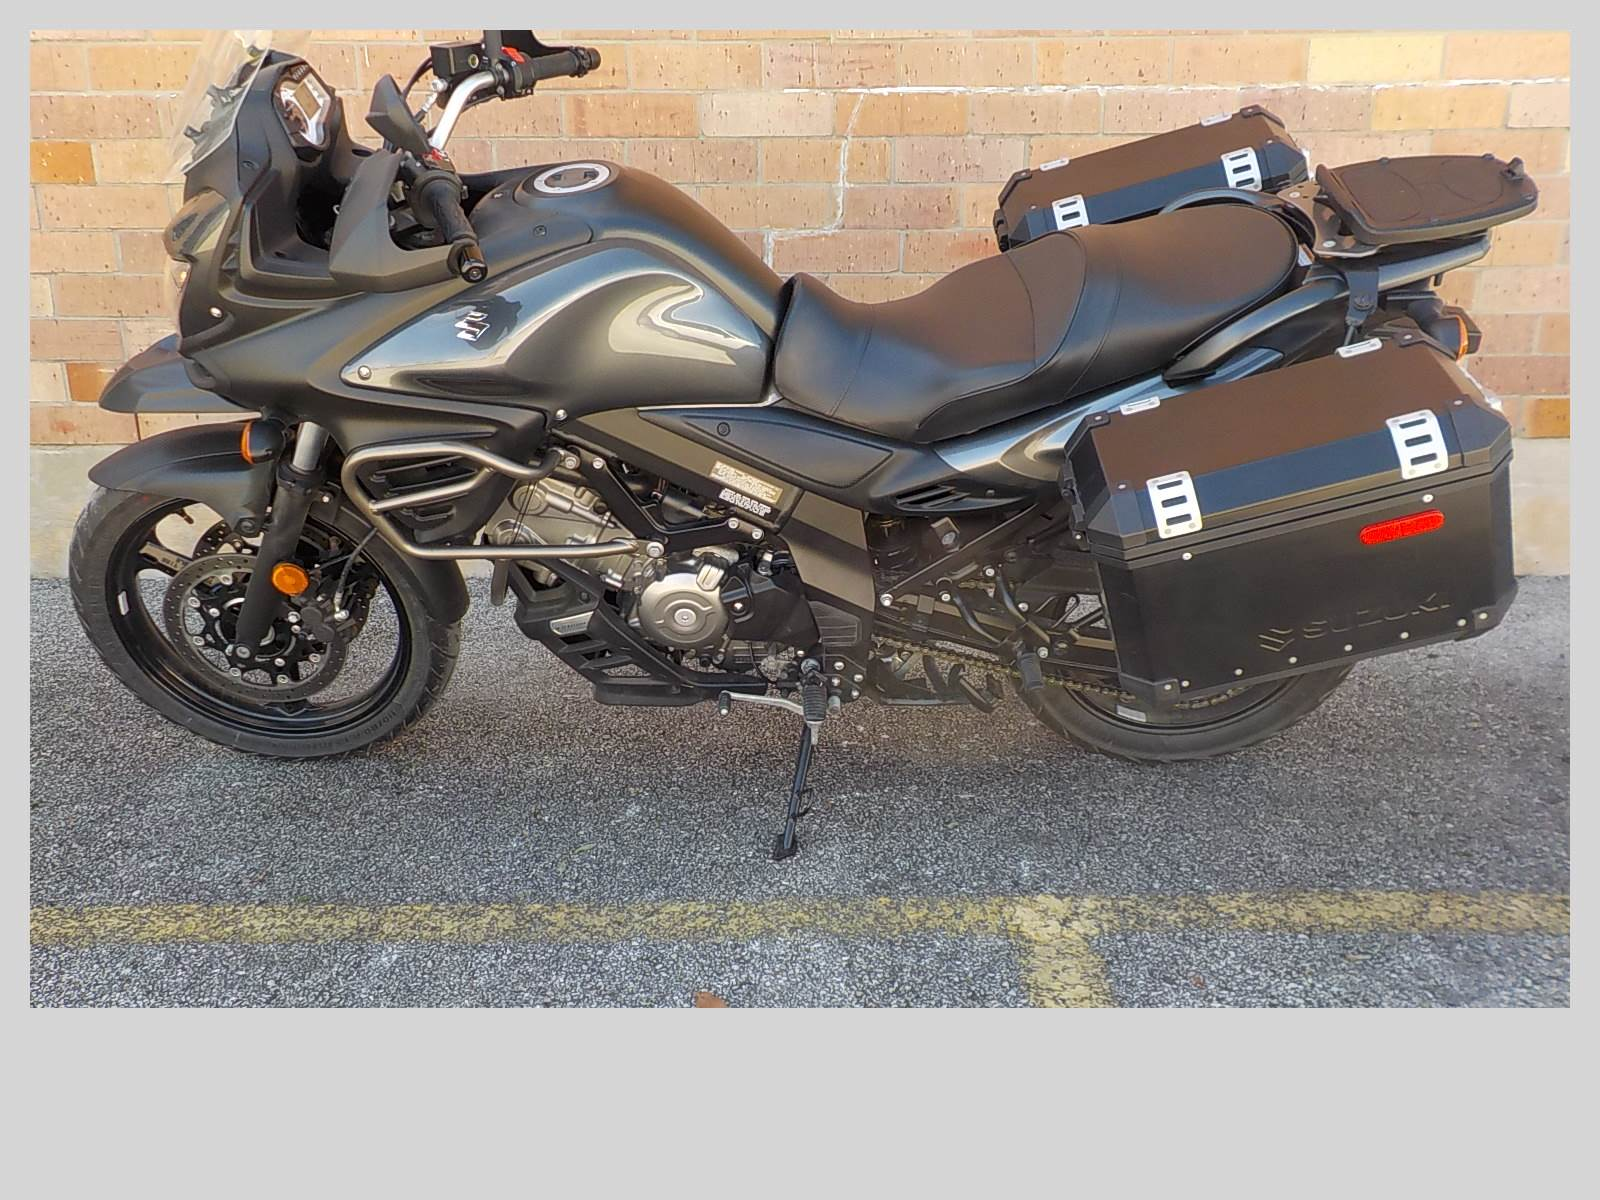 2014 Suzuki V-Strom 650 ABS Adventure in San Antonio, Texas